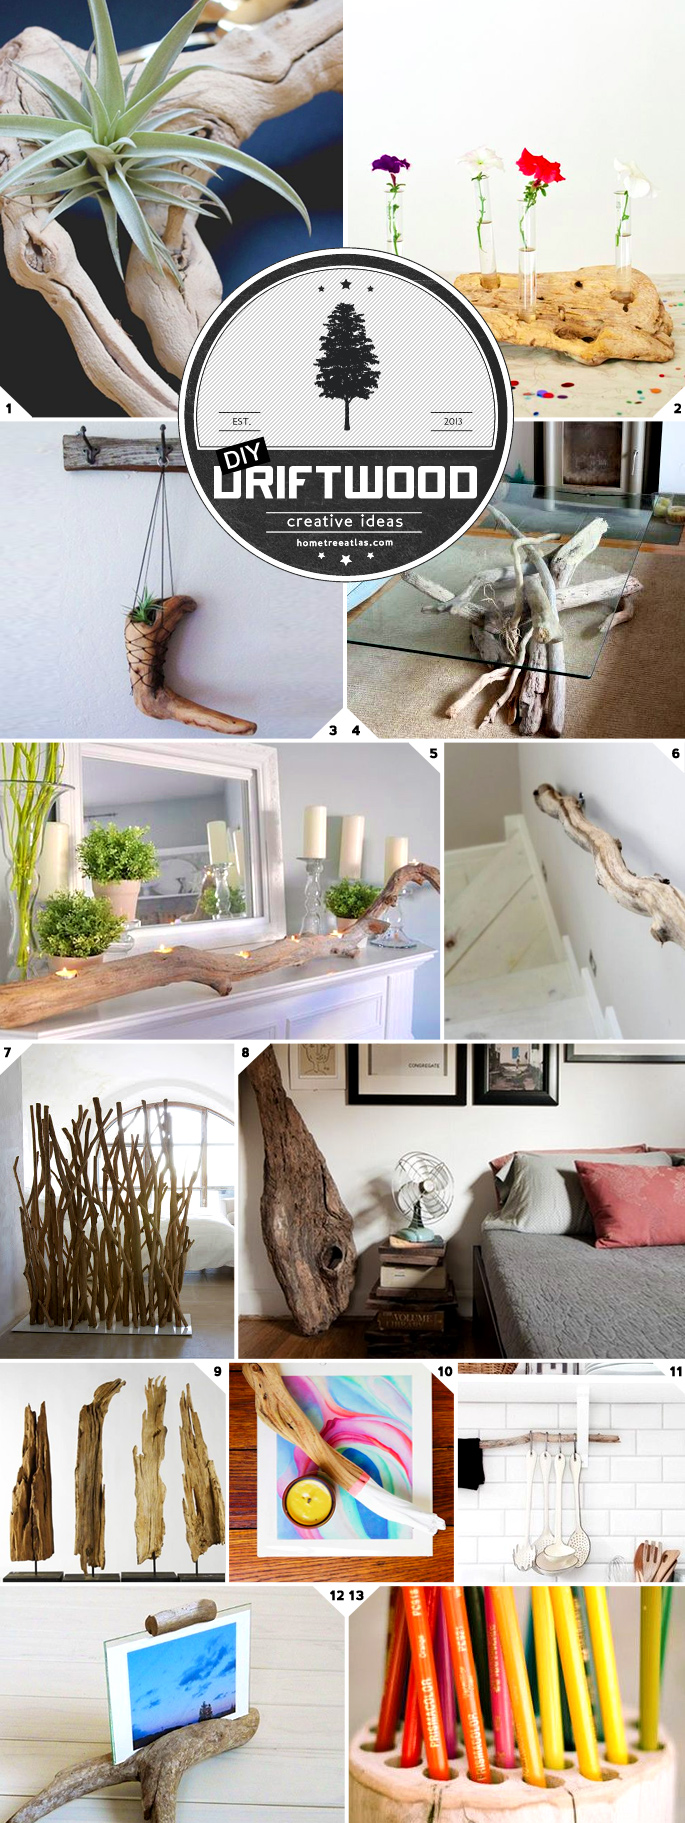 Home Decor and DIY Ideas: Using Driftwood